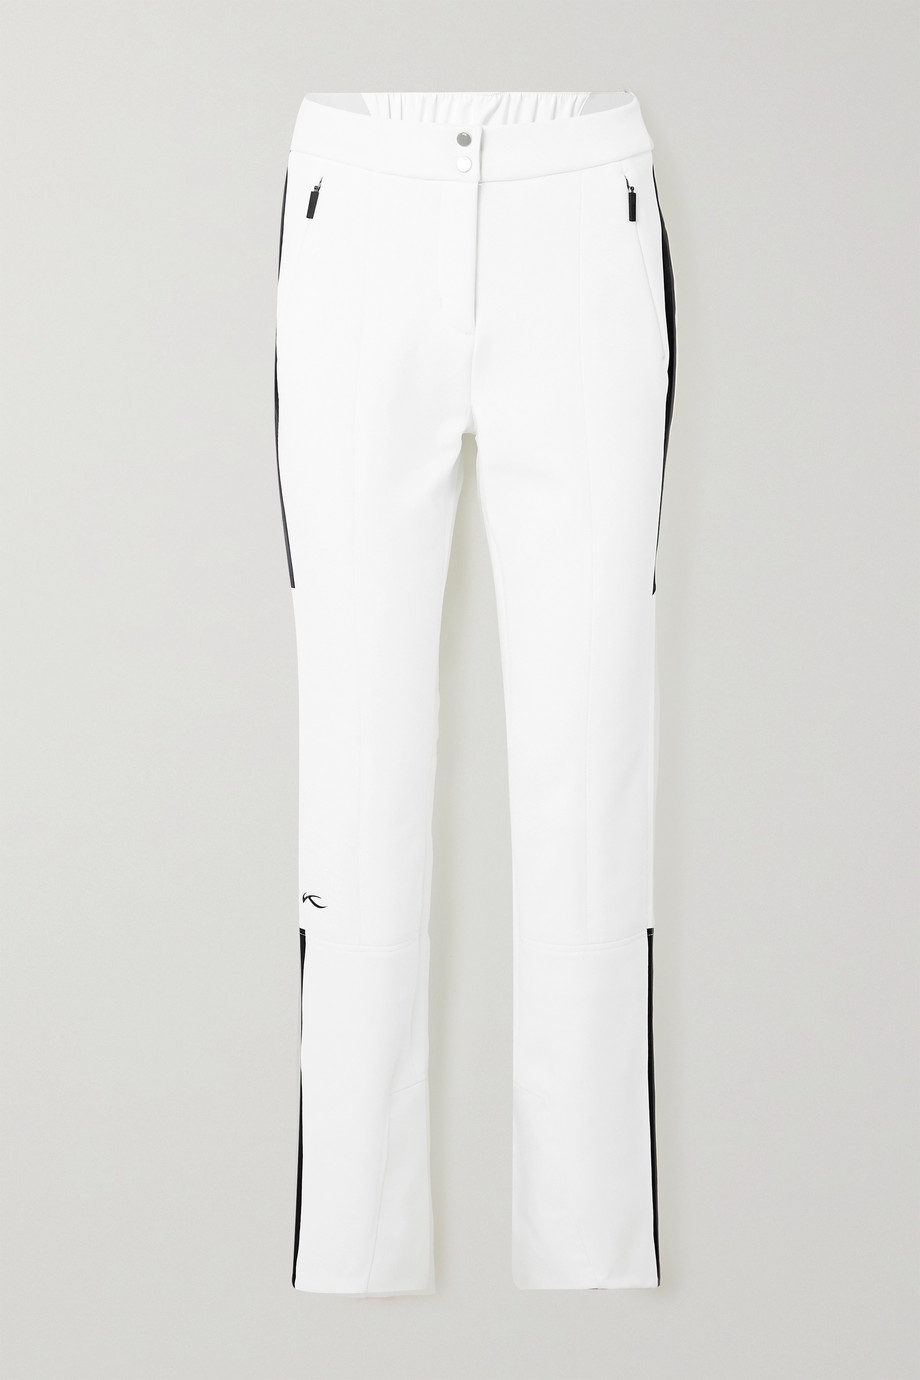 Kjus Sella Jet two-tone bootcut ski pants